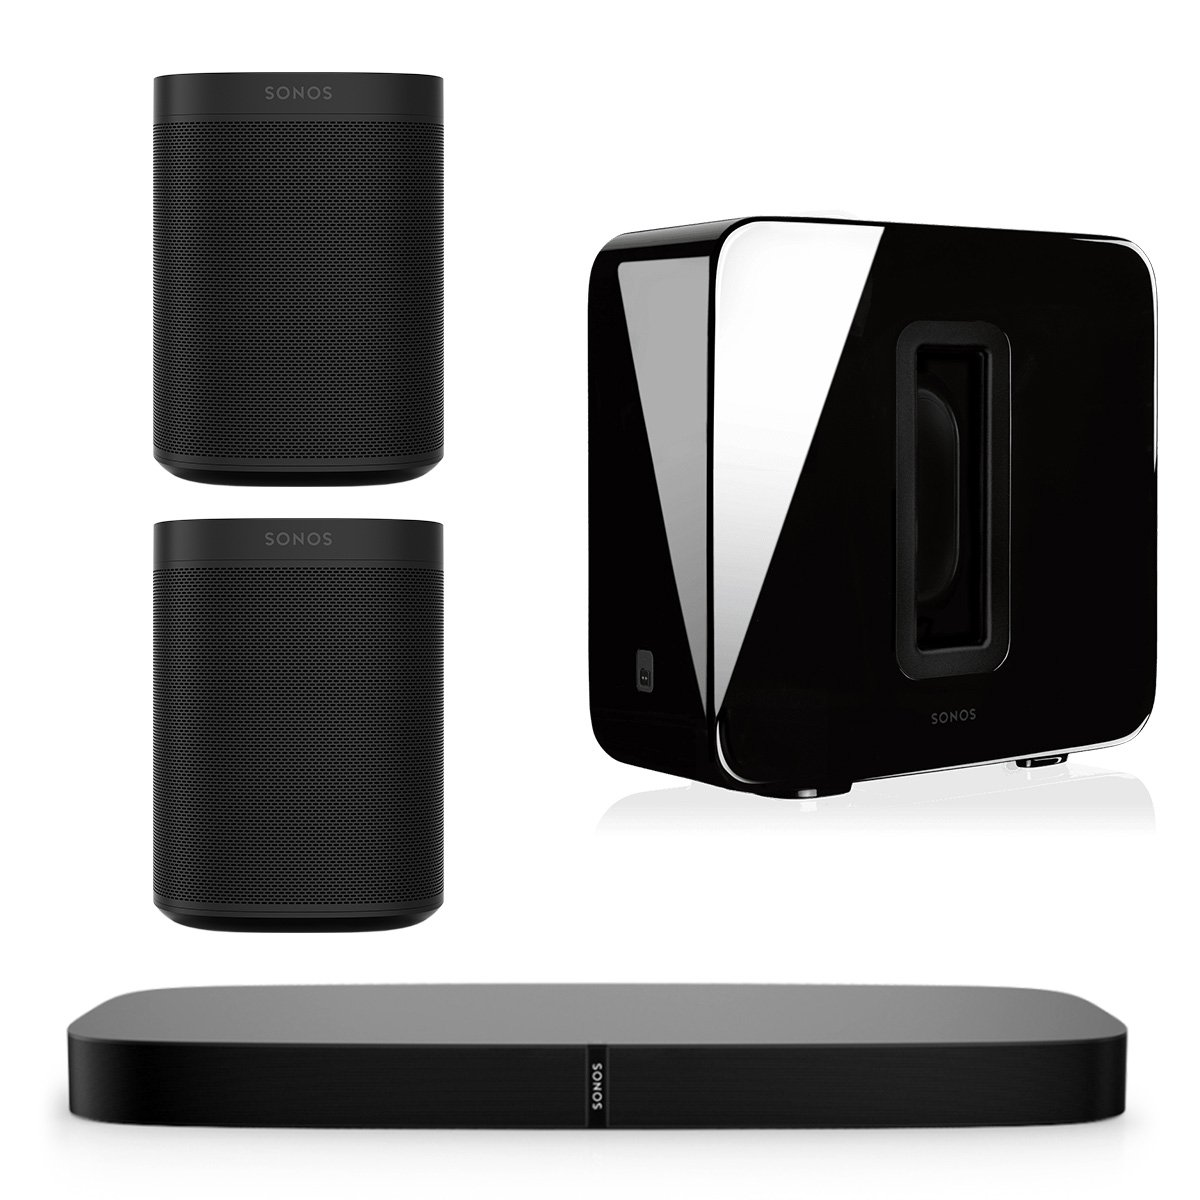 Sonos 5.1 PLAYBASE Home Theater System with Sonos ONE Streaming Speakers (Pair) and SUB Wireless Subwoofer (Black) by Sonos